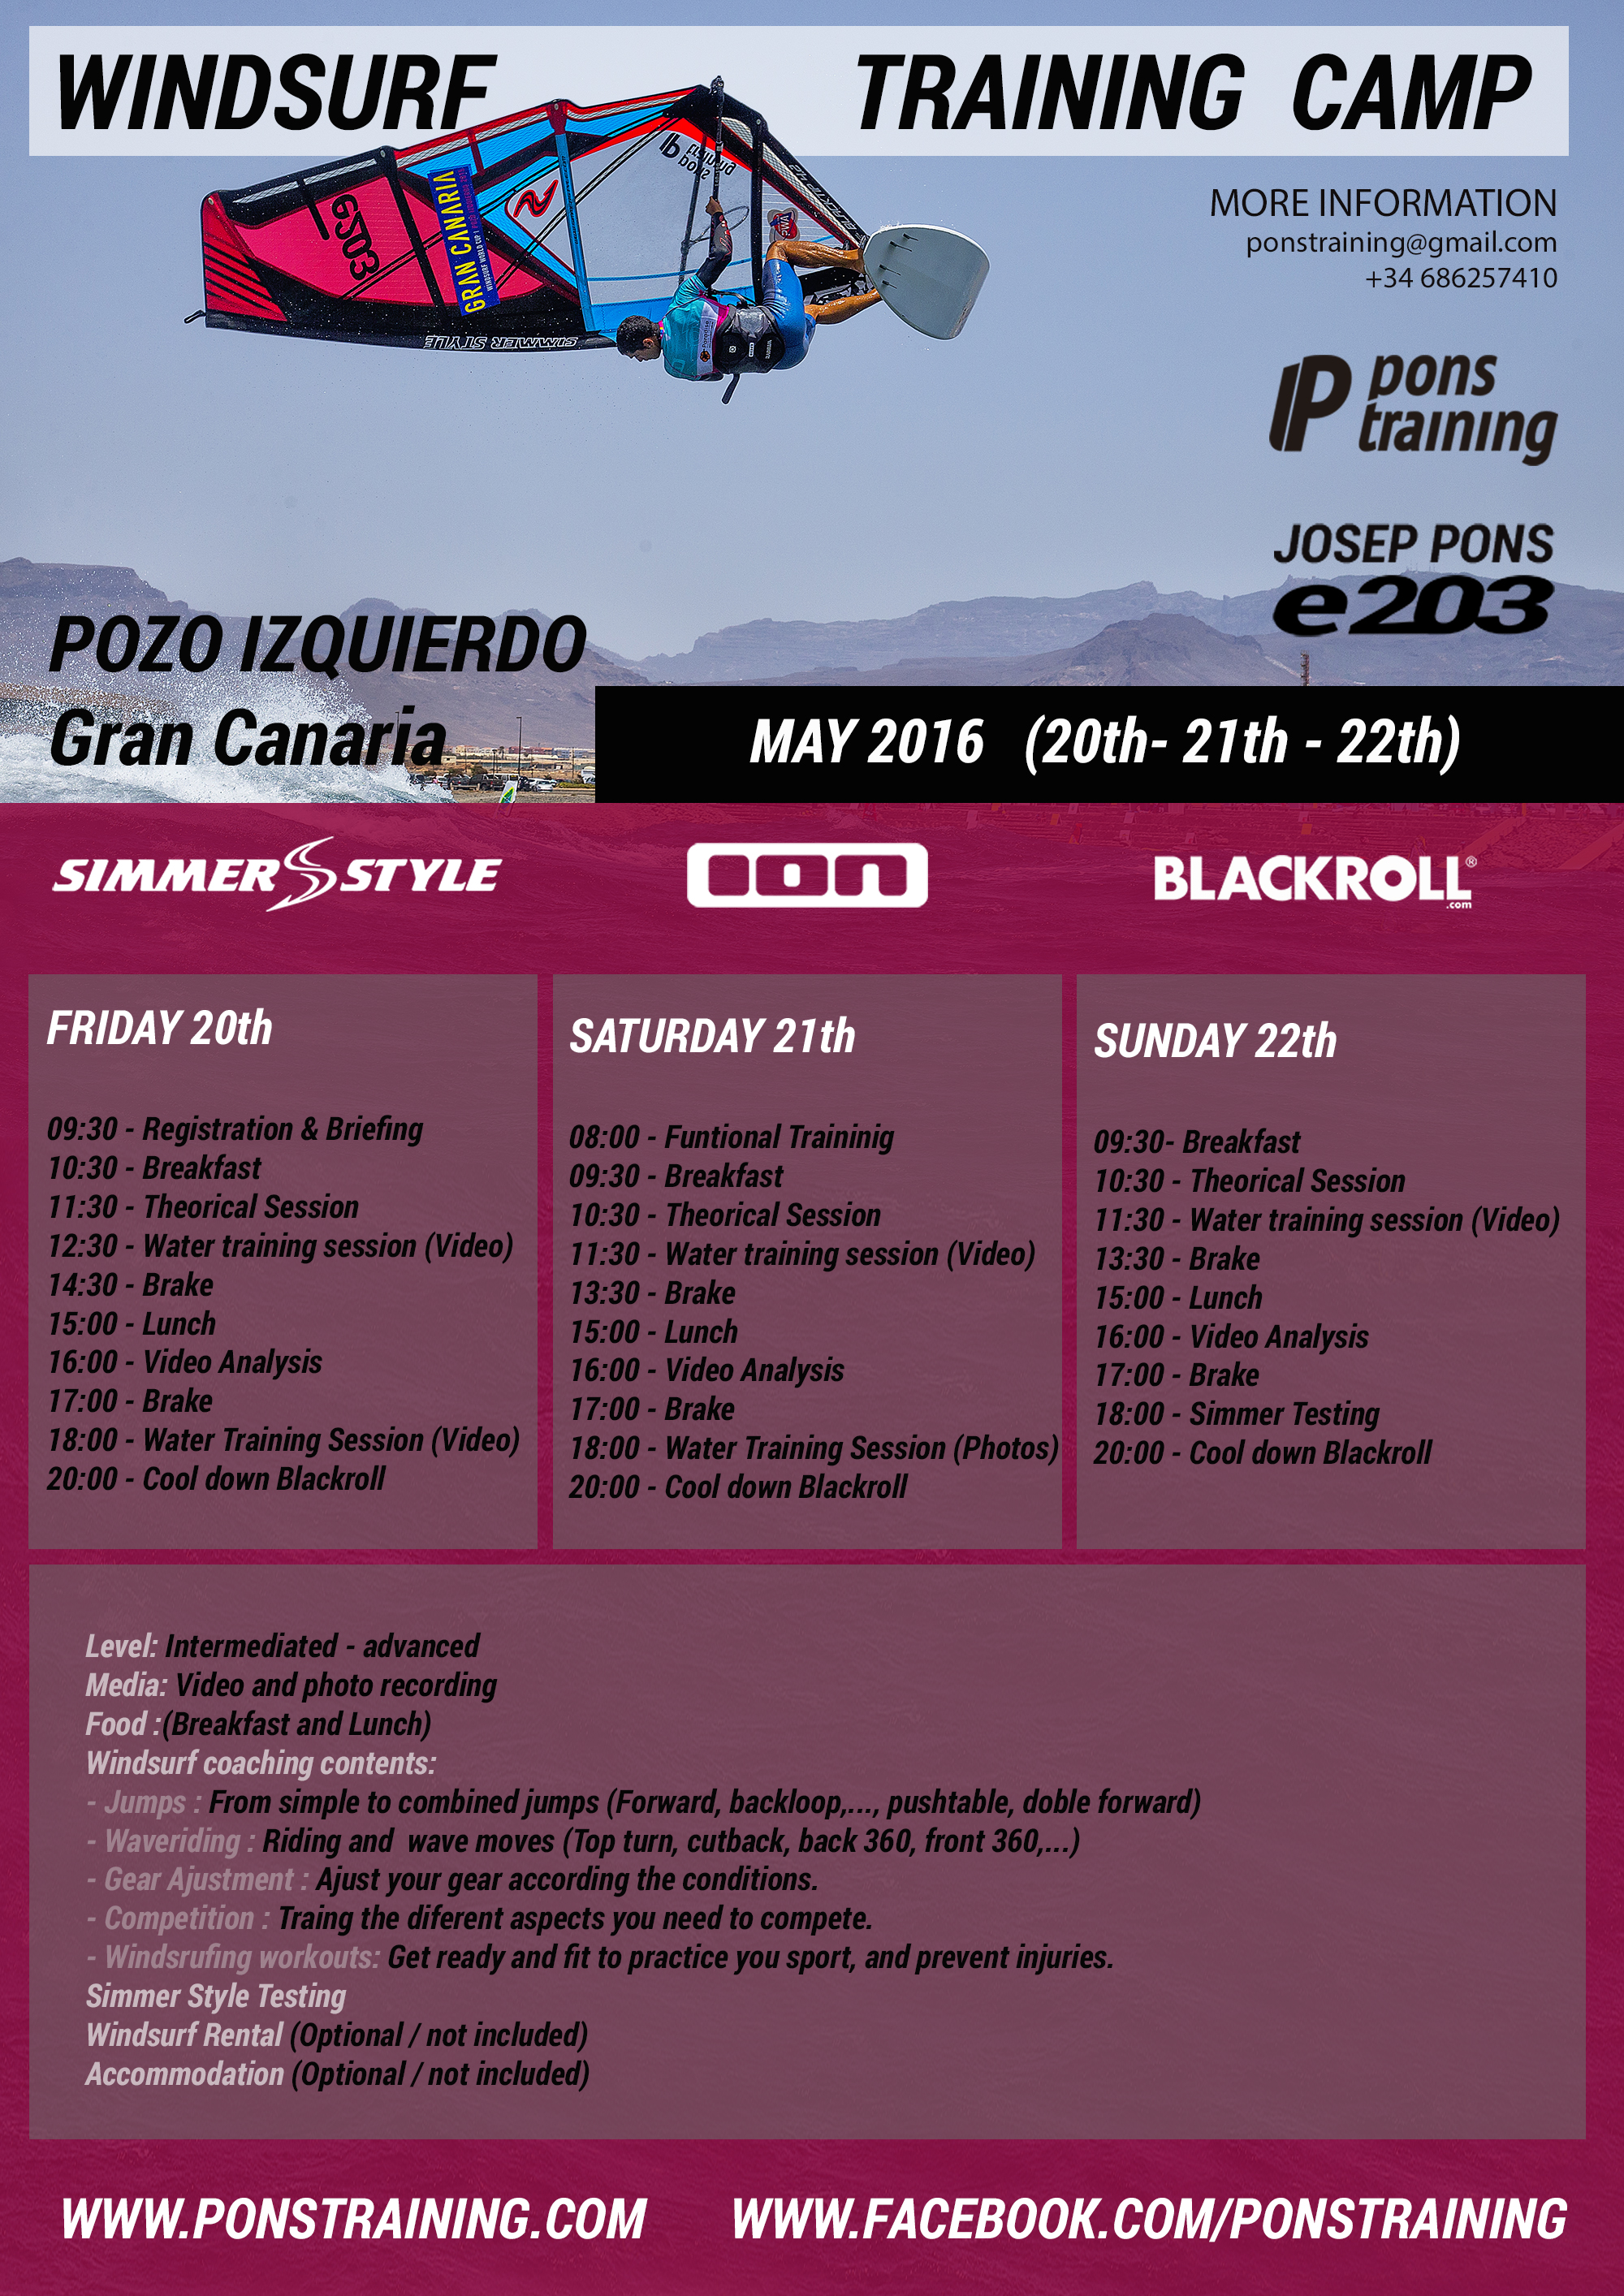 HORARIOS TRAINING CAMP